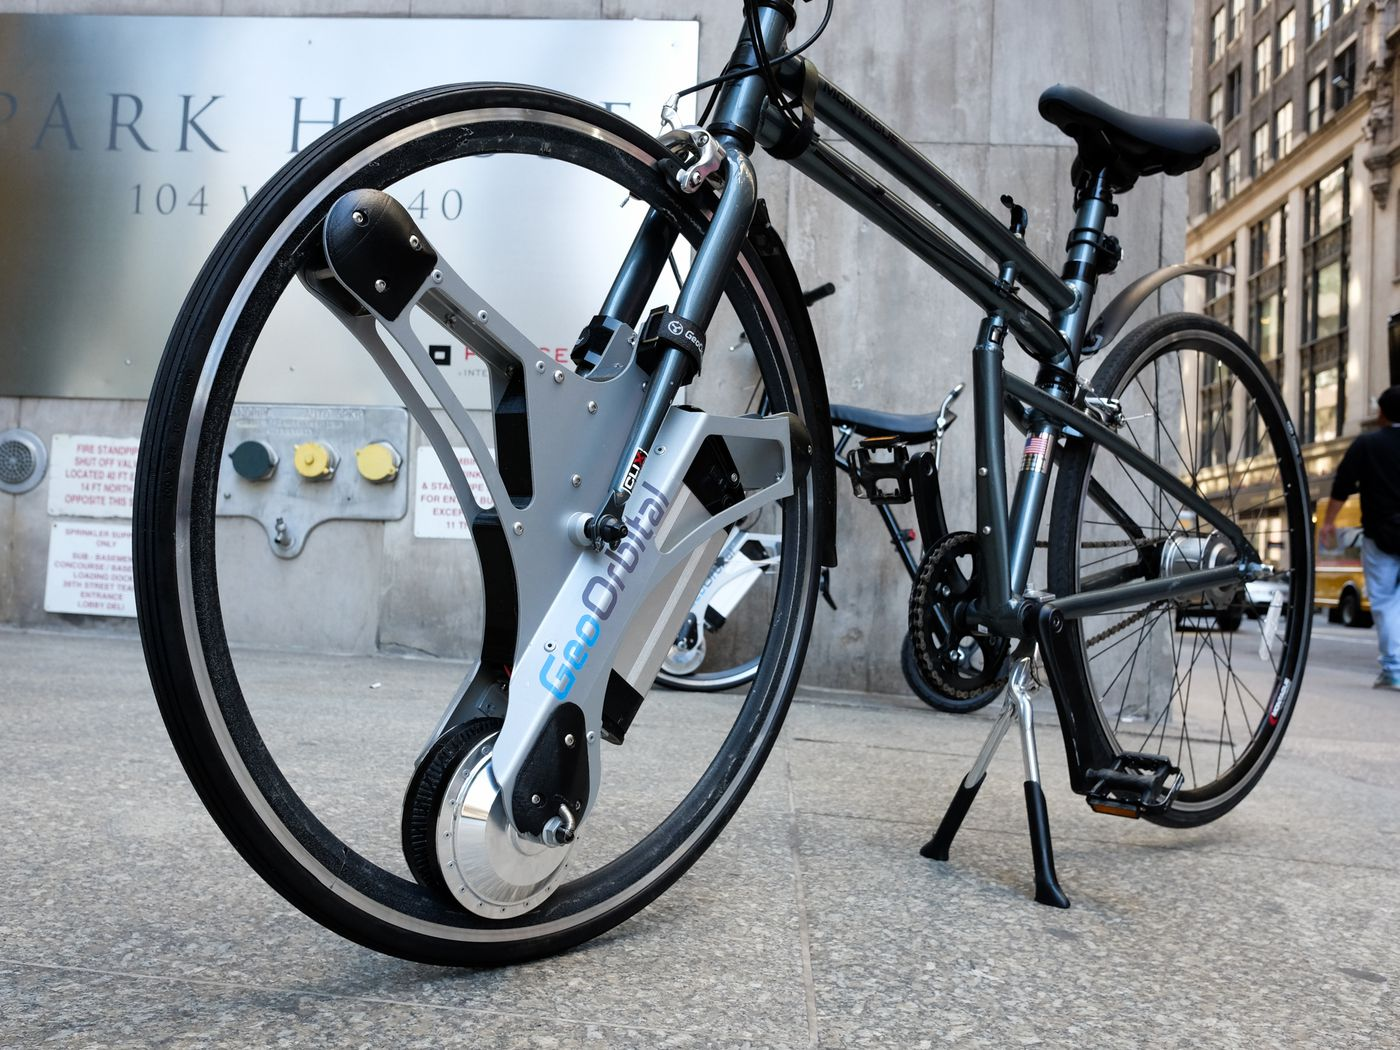 This motorized wheel adds electric power to your bike - The Verge